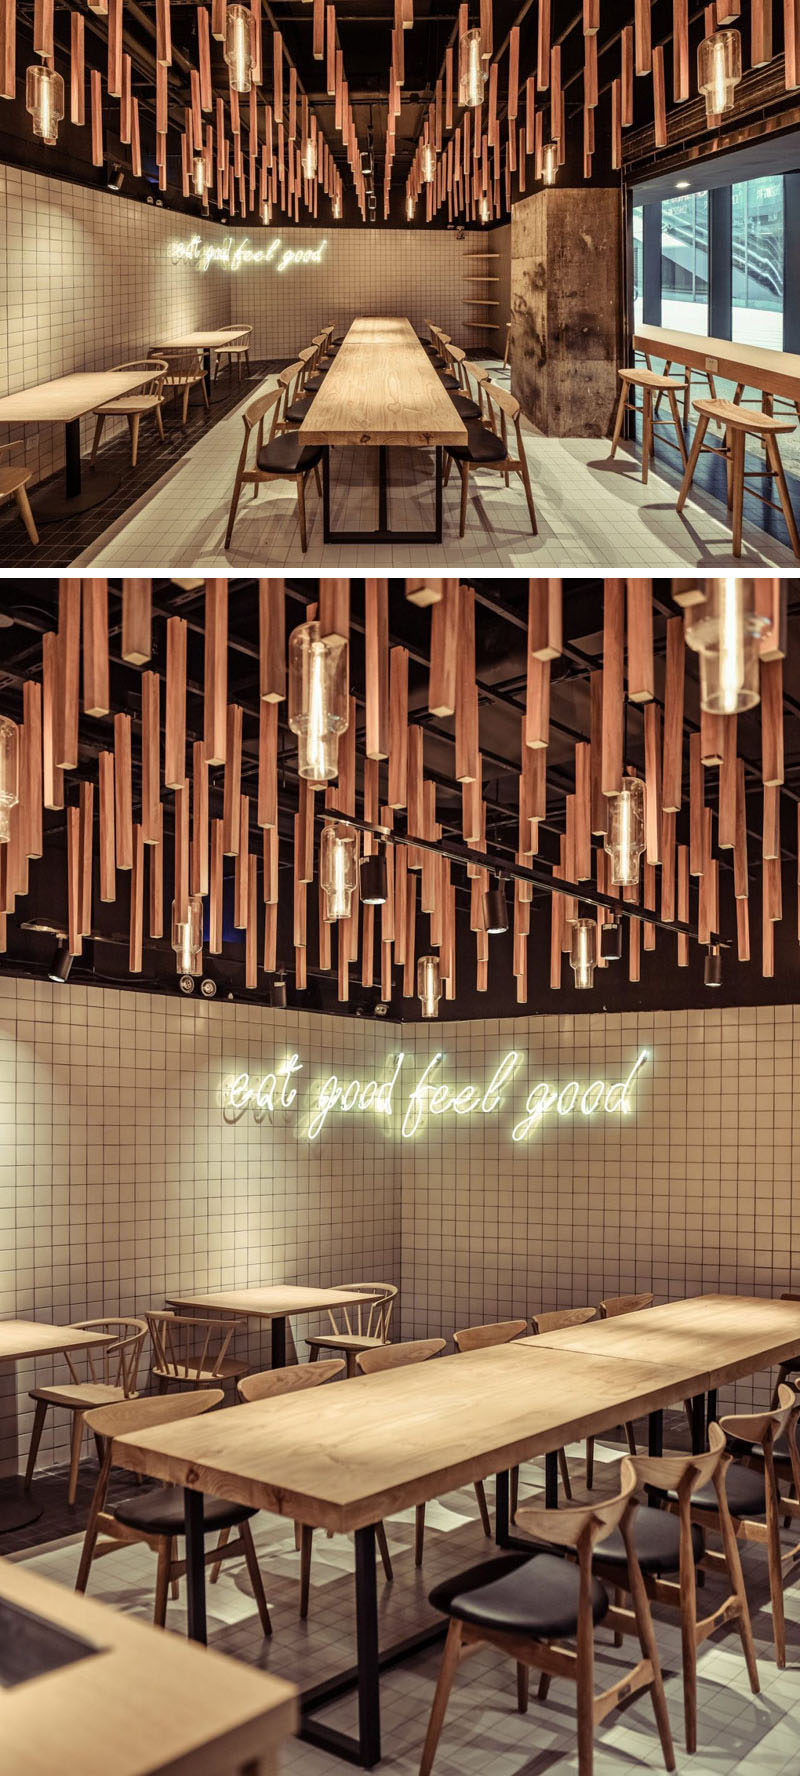 this new coffee shop in china uses wood elements to emulate nature